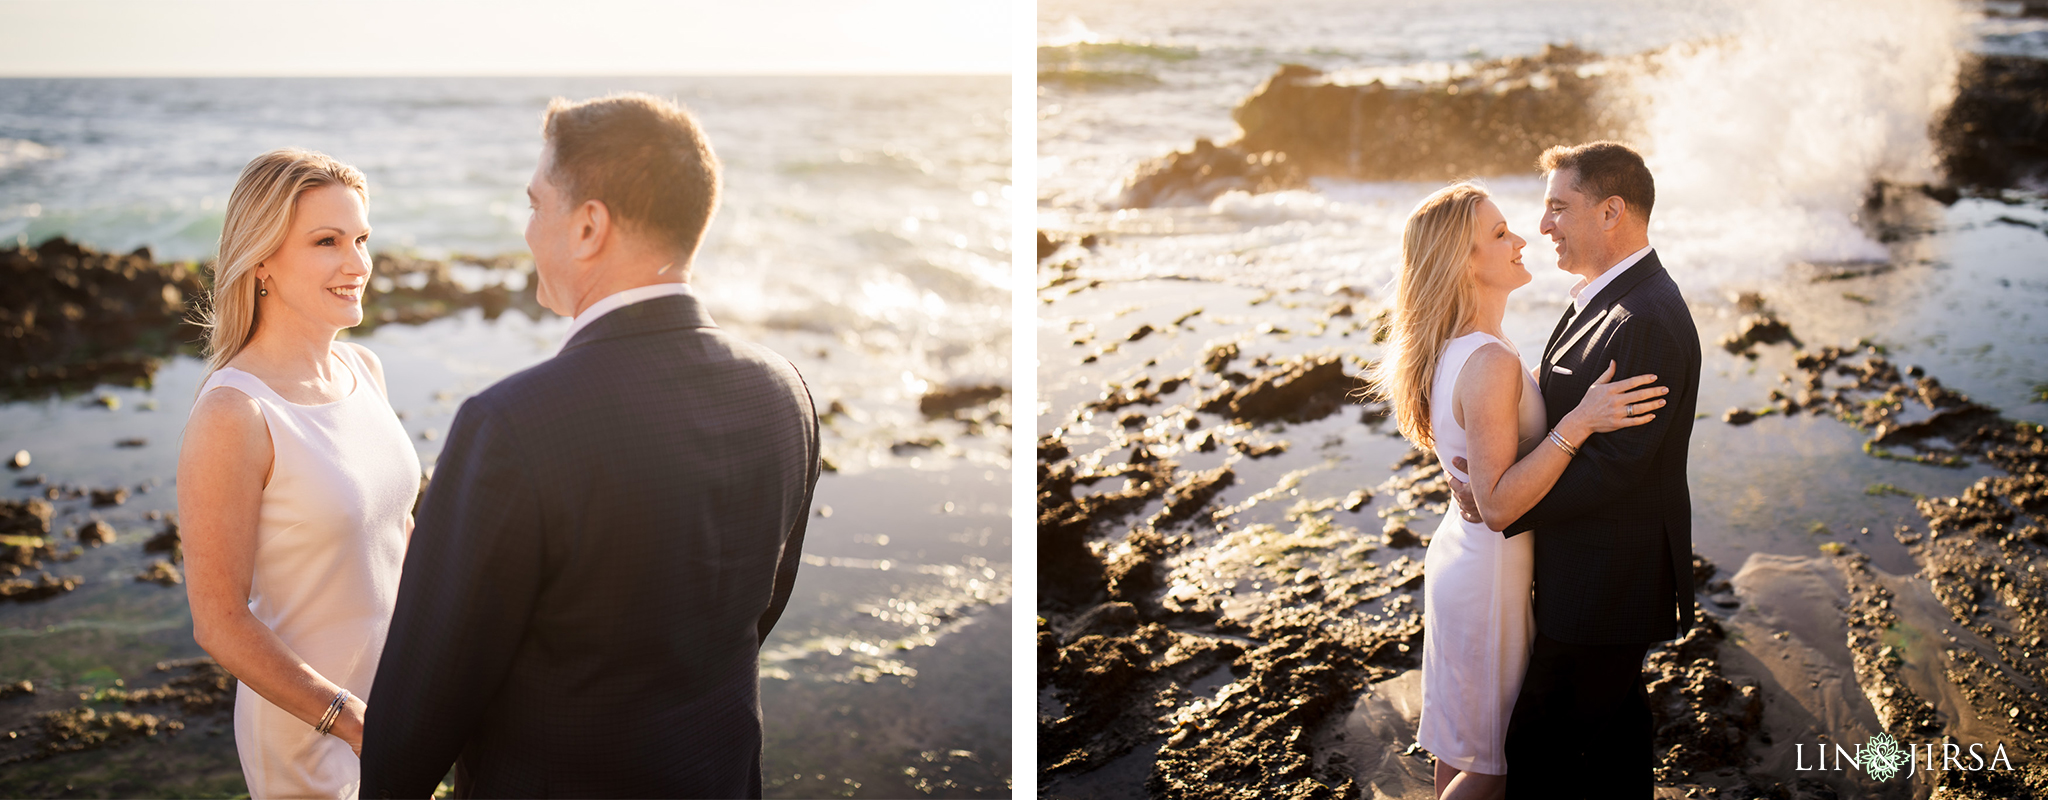 13 Victoria Beach Orange County Engagement Photography